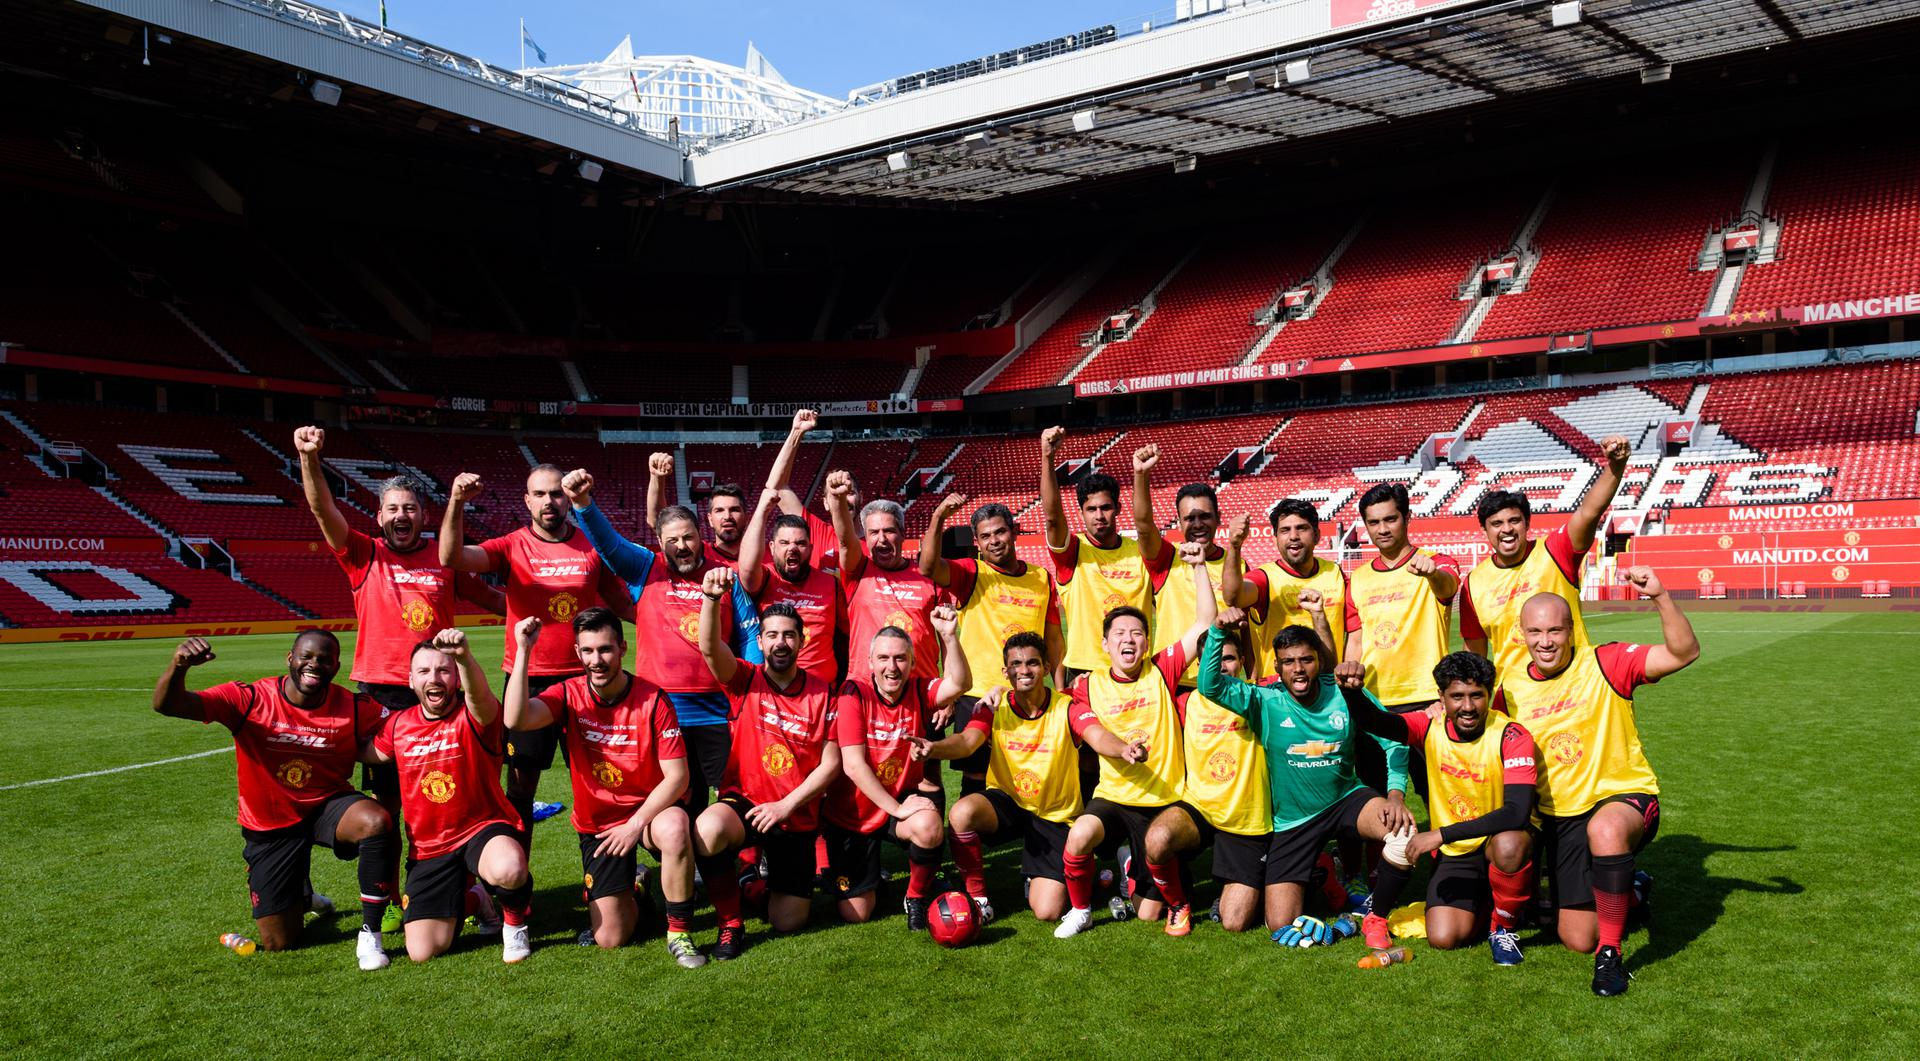 DHL's UNITED. DELIVERED. Global Football Tour finished with a game at Old Trafford in May 2019.